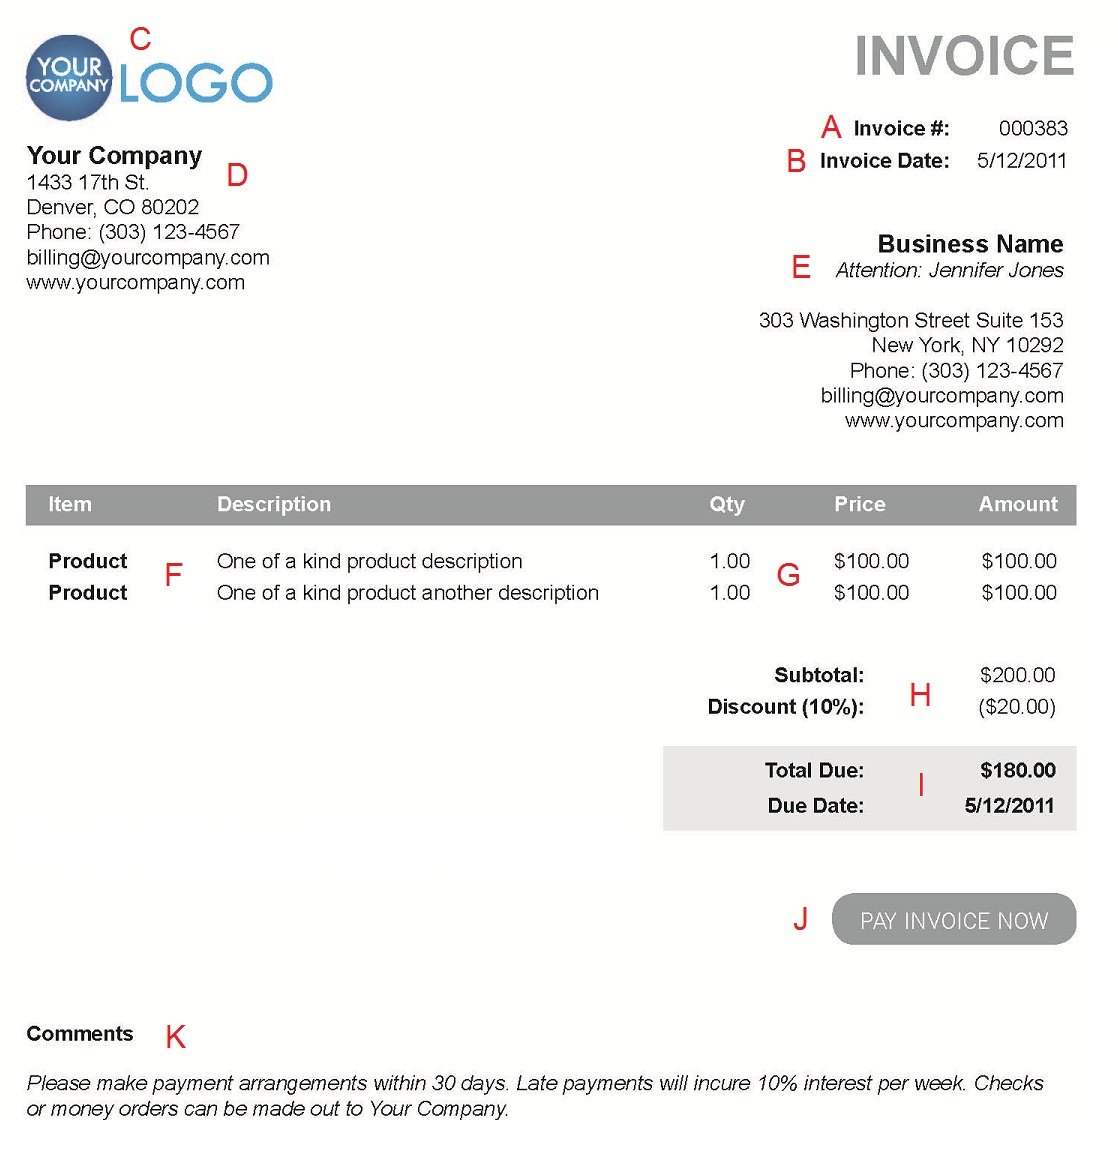 Opposenewapstandardsus  Sweet The  Different Sections Of An Electronic Payment Invoice With Lovely A  With Lovely Invoice Delivery Also How To Do An Invoice On Word In Addition Pay With Invoice And Template Tax Invoice As Well As Proforma Invoice Software Additionally Invoicing For Mac From Paysimplecom With Opposenewapstandardsus  Lovely The  Different Sections Of An Electronic Payment Invoice With Lovely A  And Sweet Invoice Delivery Also How To Do An Invoice On Word In Addition Pay With Invoice From Paysimplecom